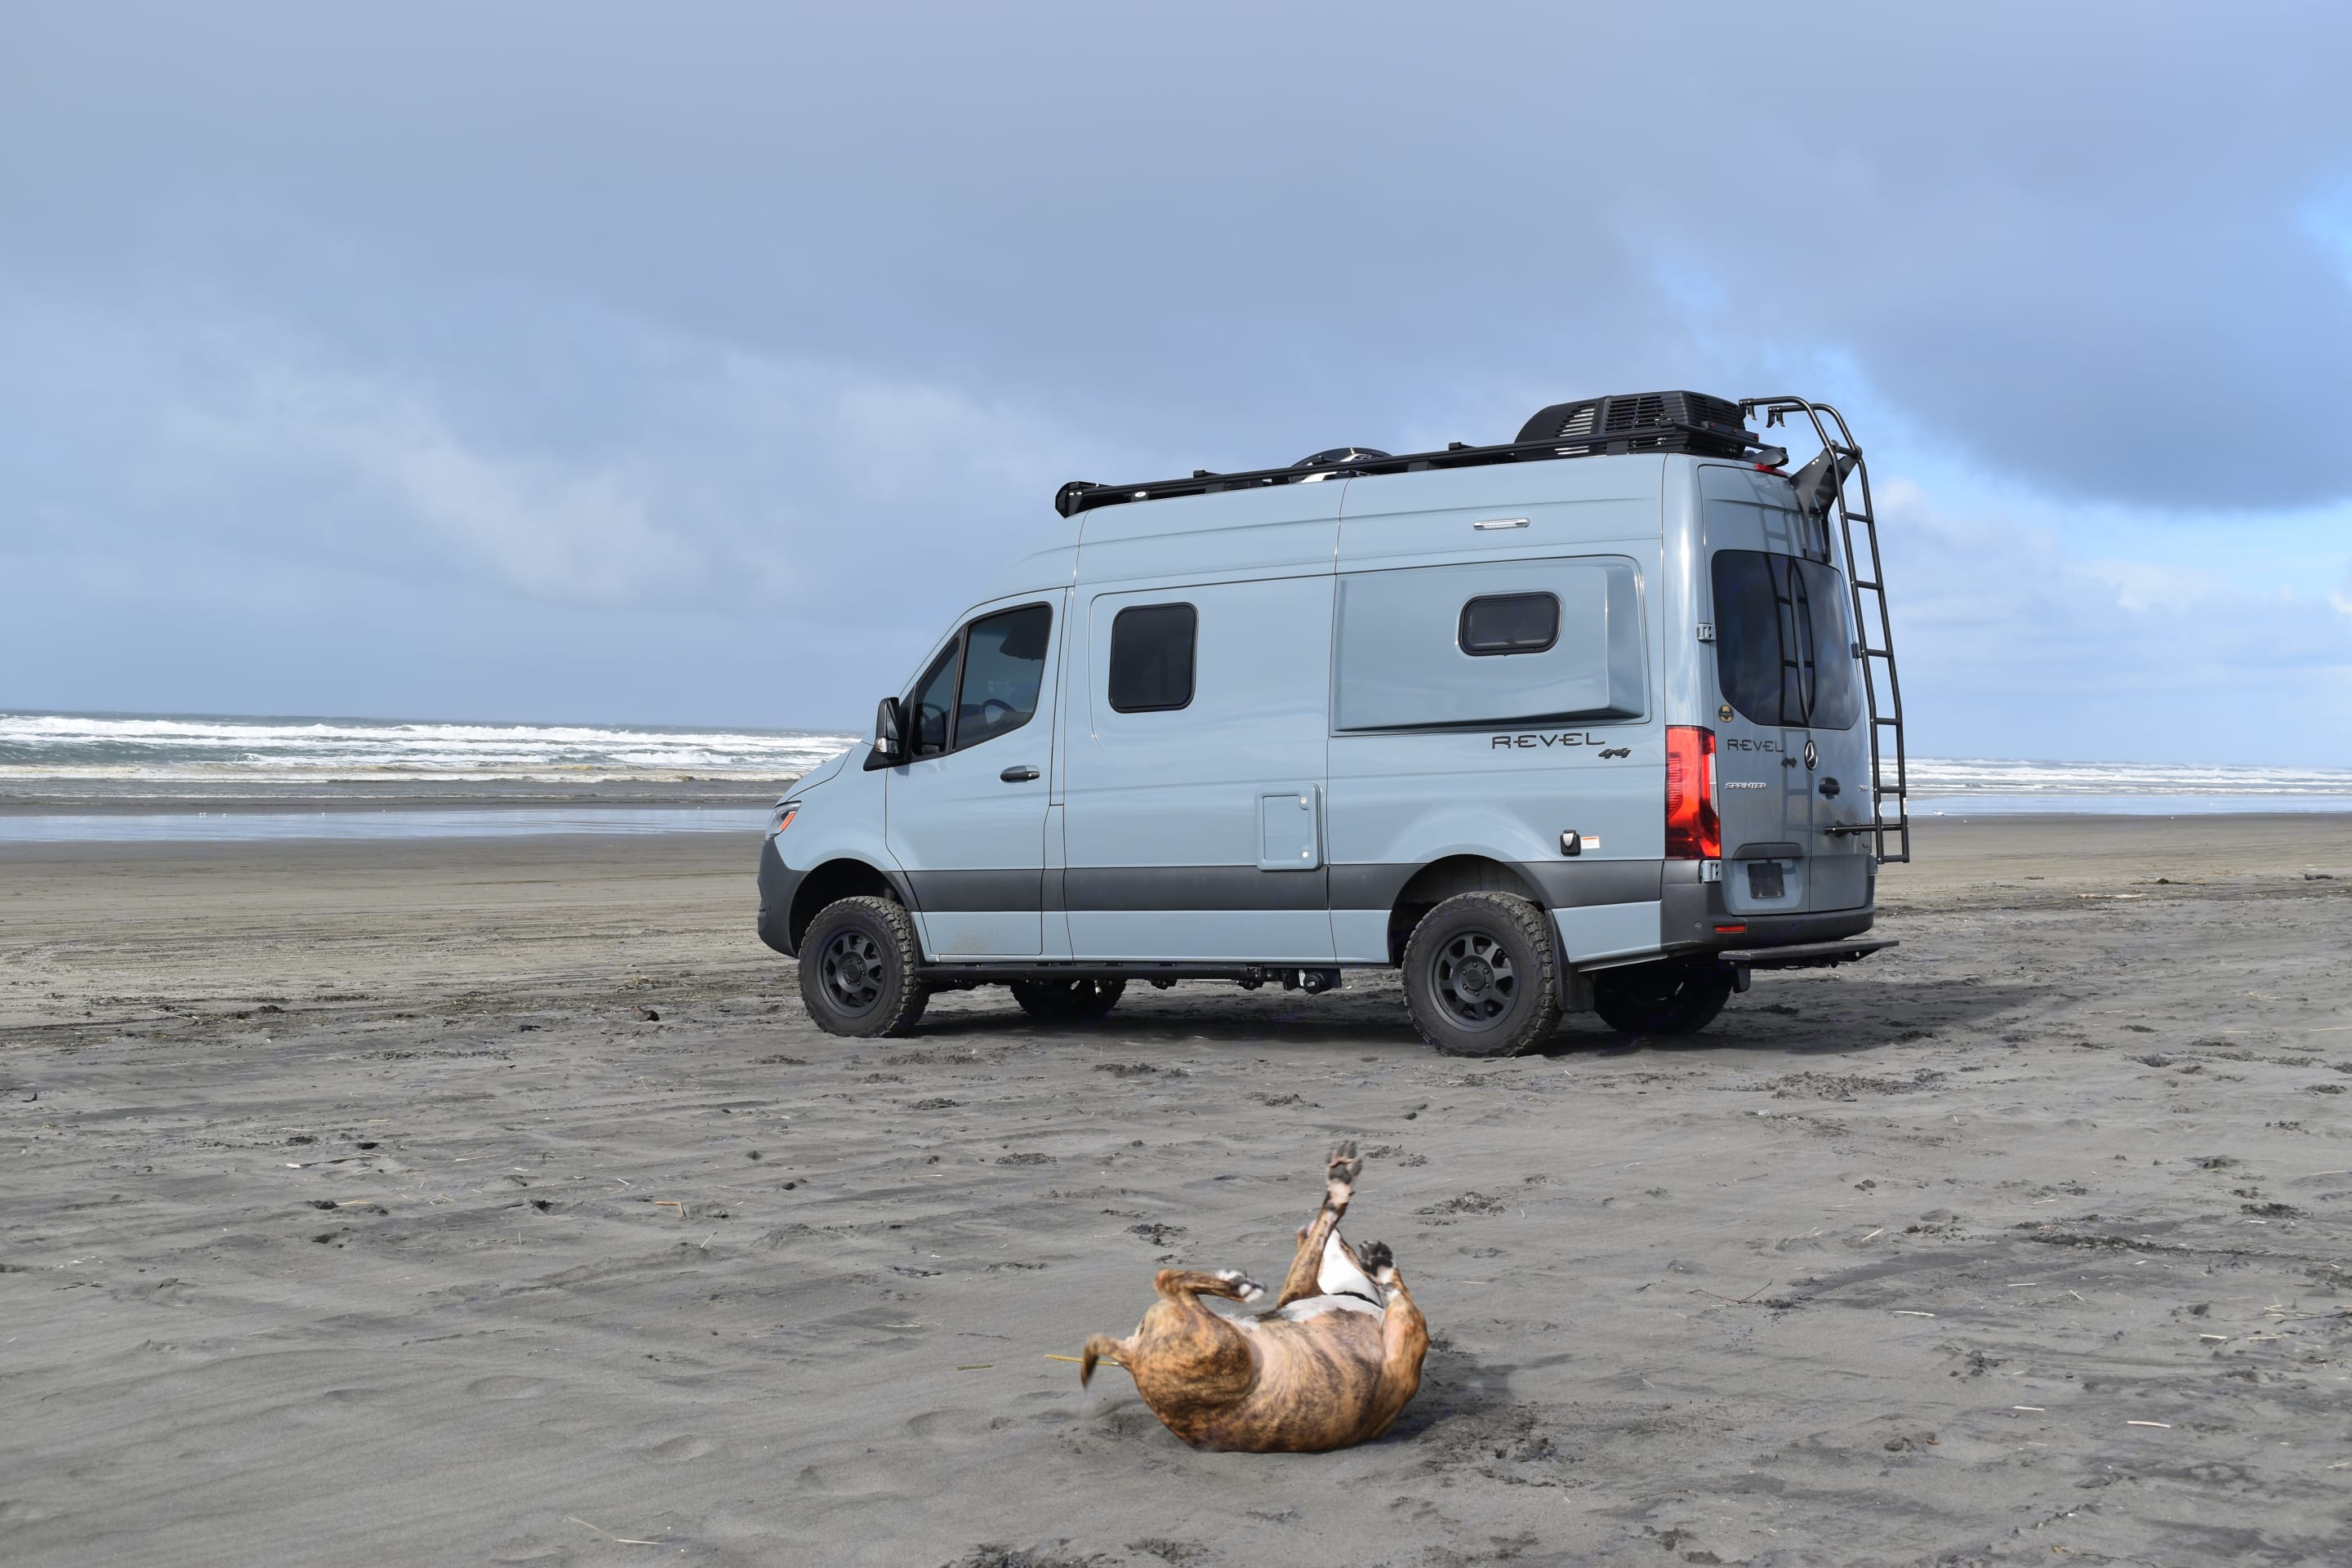 Does your dog love the beach as much as our girl?. Winnebago Revel 2021